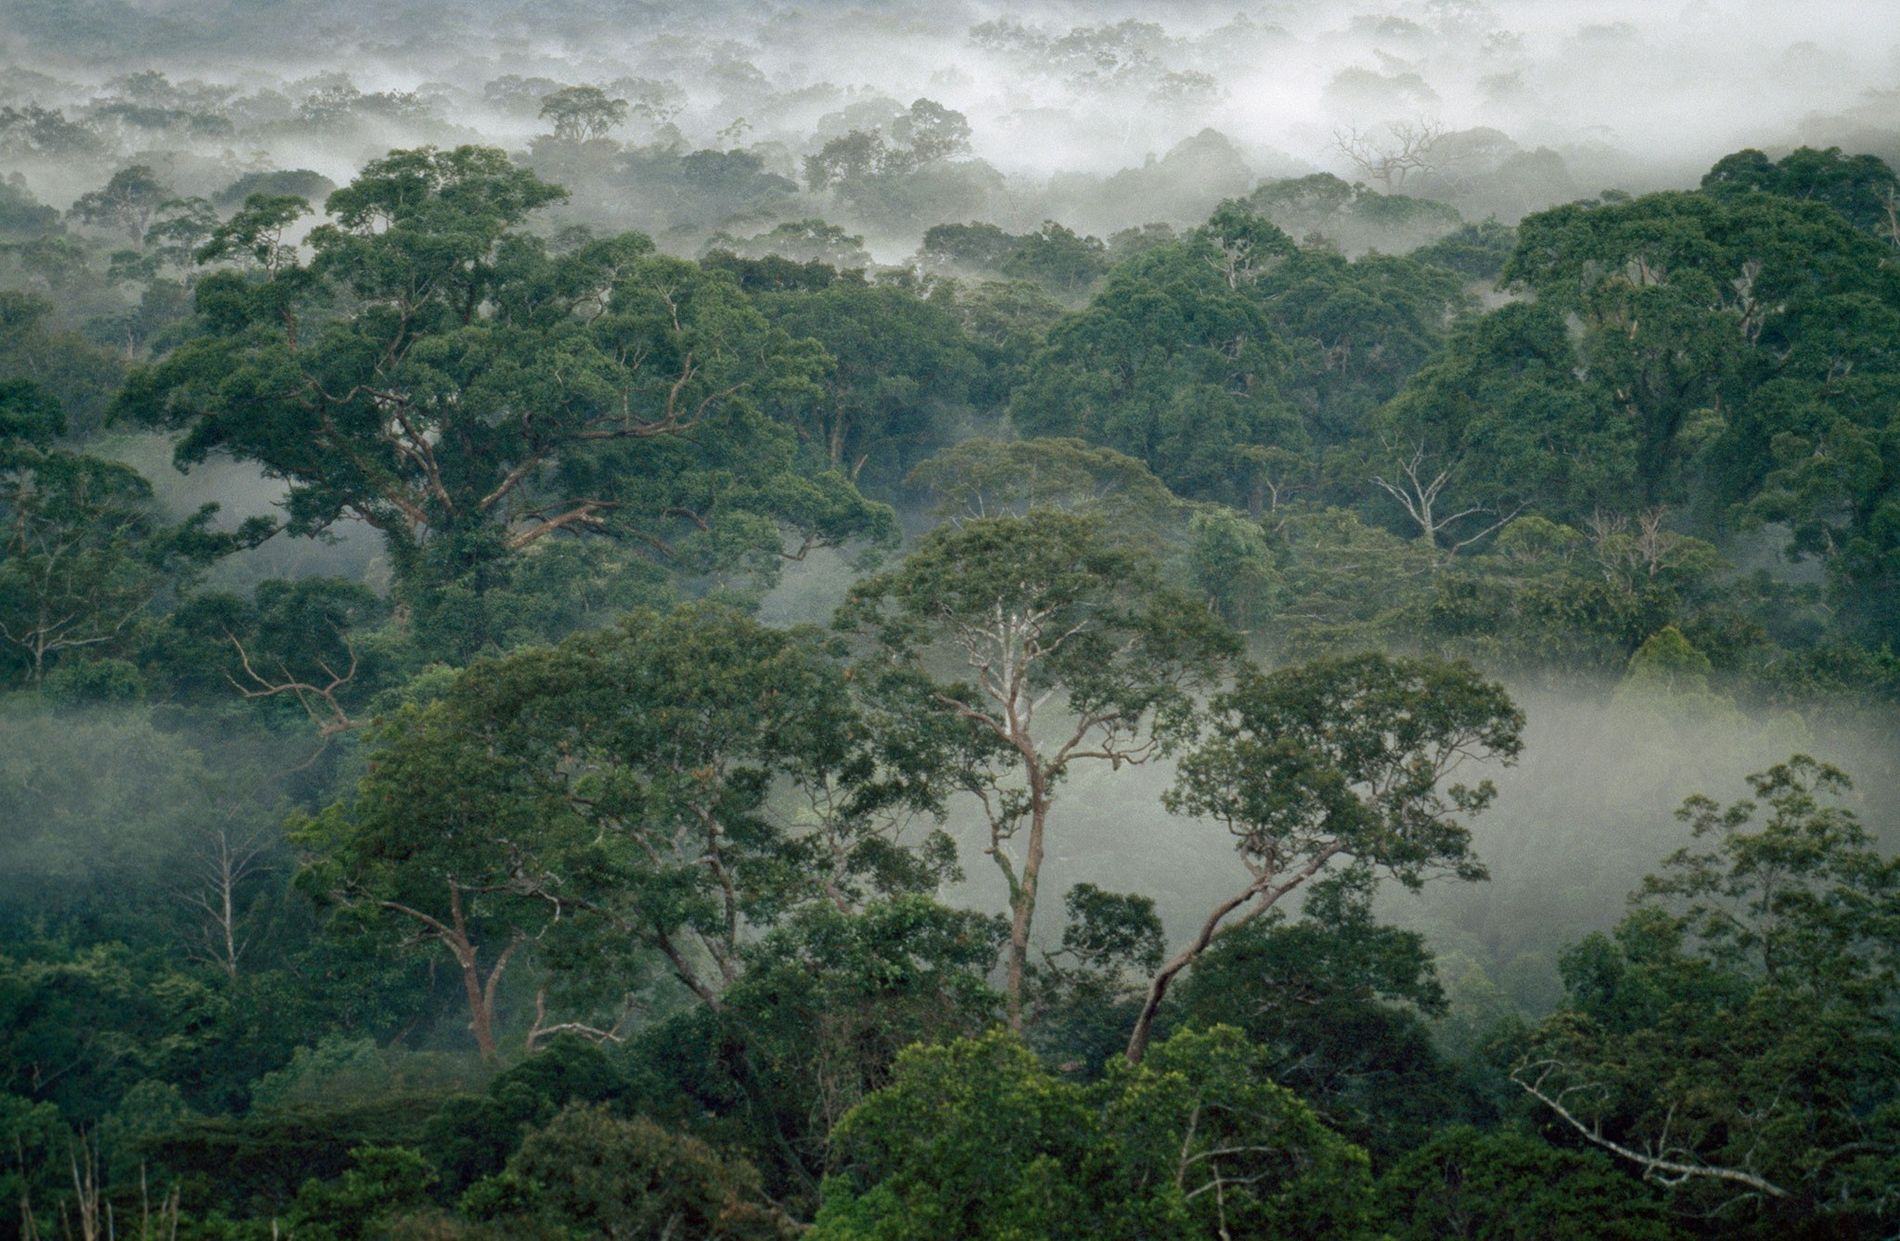 Mist-shrouded rain forest trees in Gunung Palung National Park, Borneo Island, Indonesia.